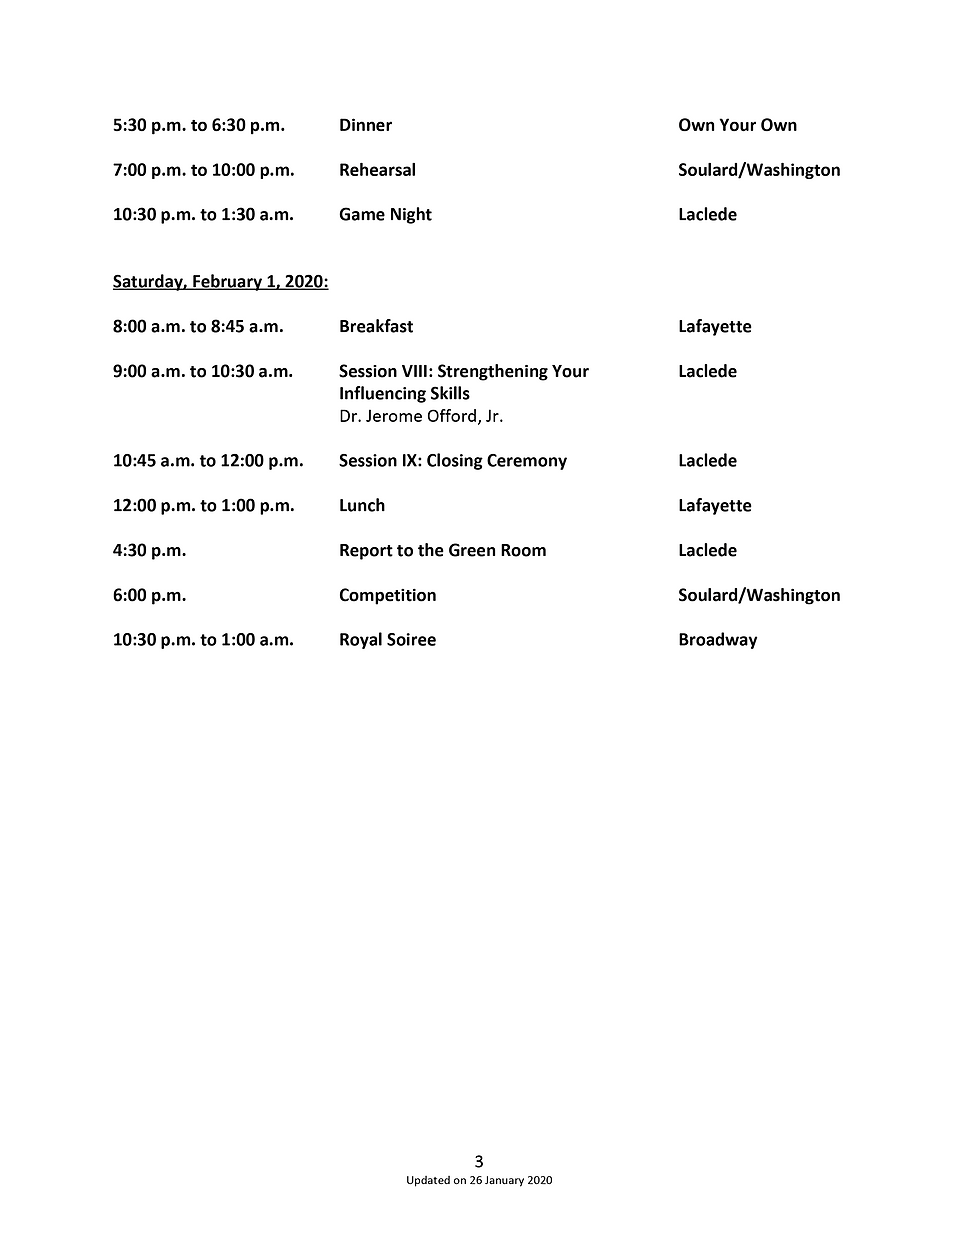 Mister HBCU Kings Only Schedule_2020_Fin